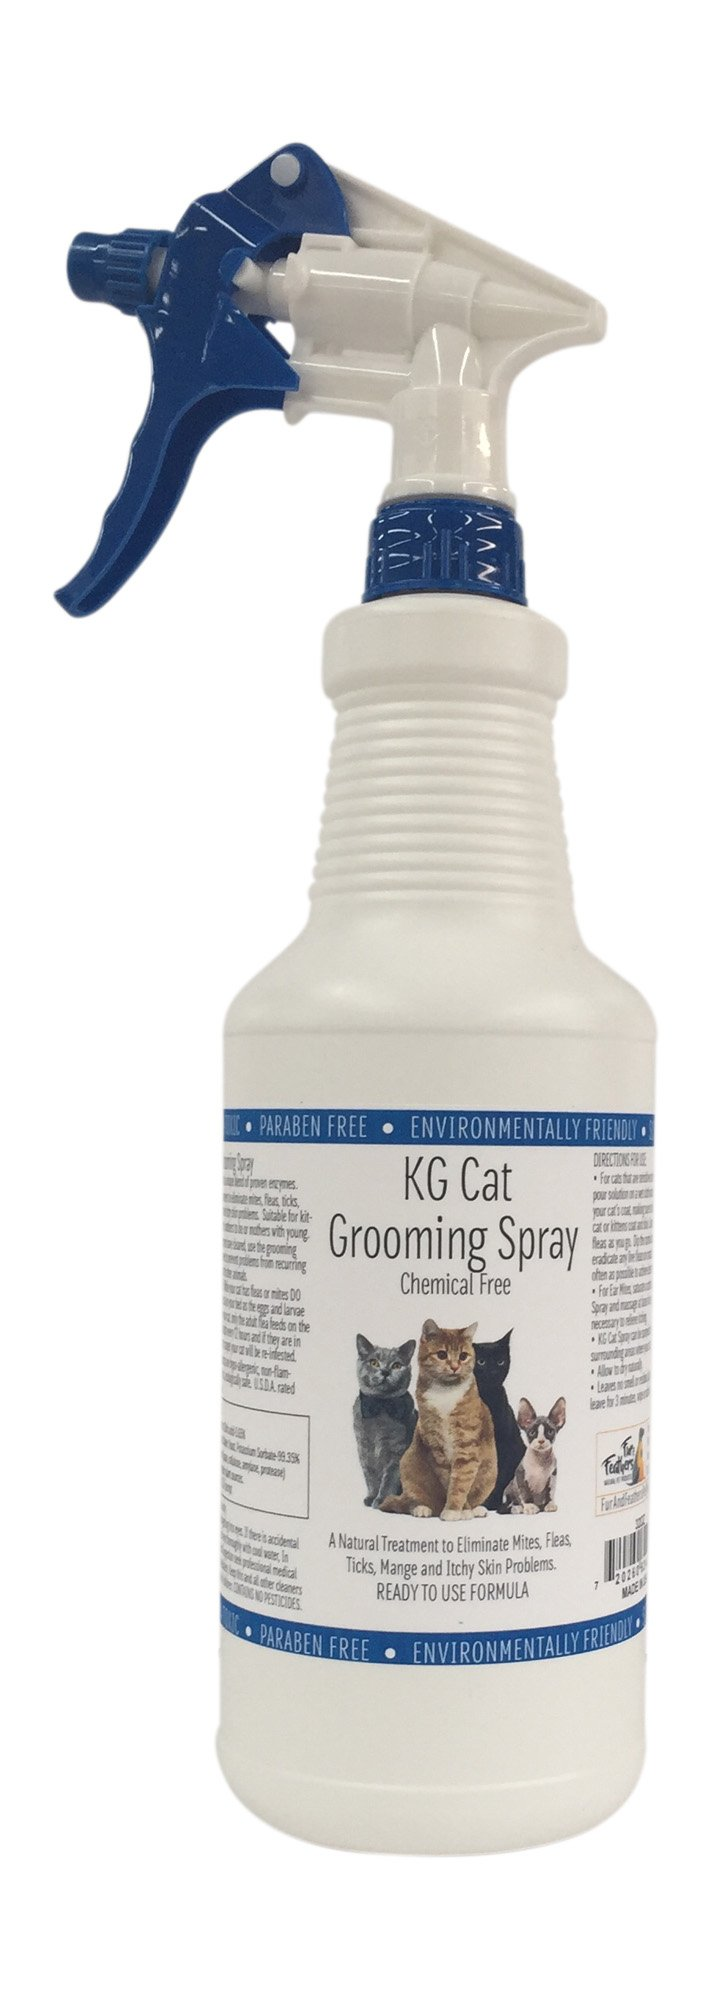 Fur and Feathers KG Cat Grooming Spray - 32oz Ready to Use Formula, for fleas, ticks, mites and itchy skin problems, Chemical free, pesticide free.